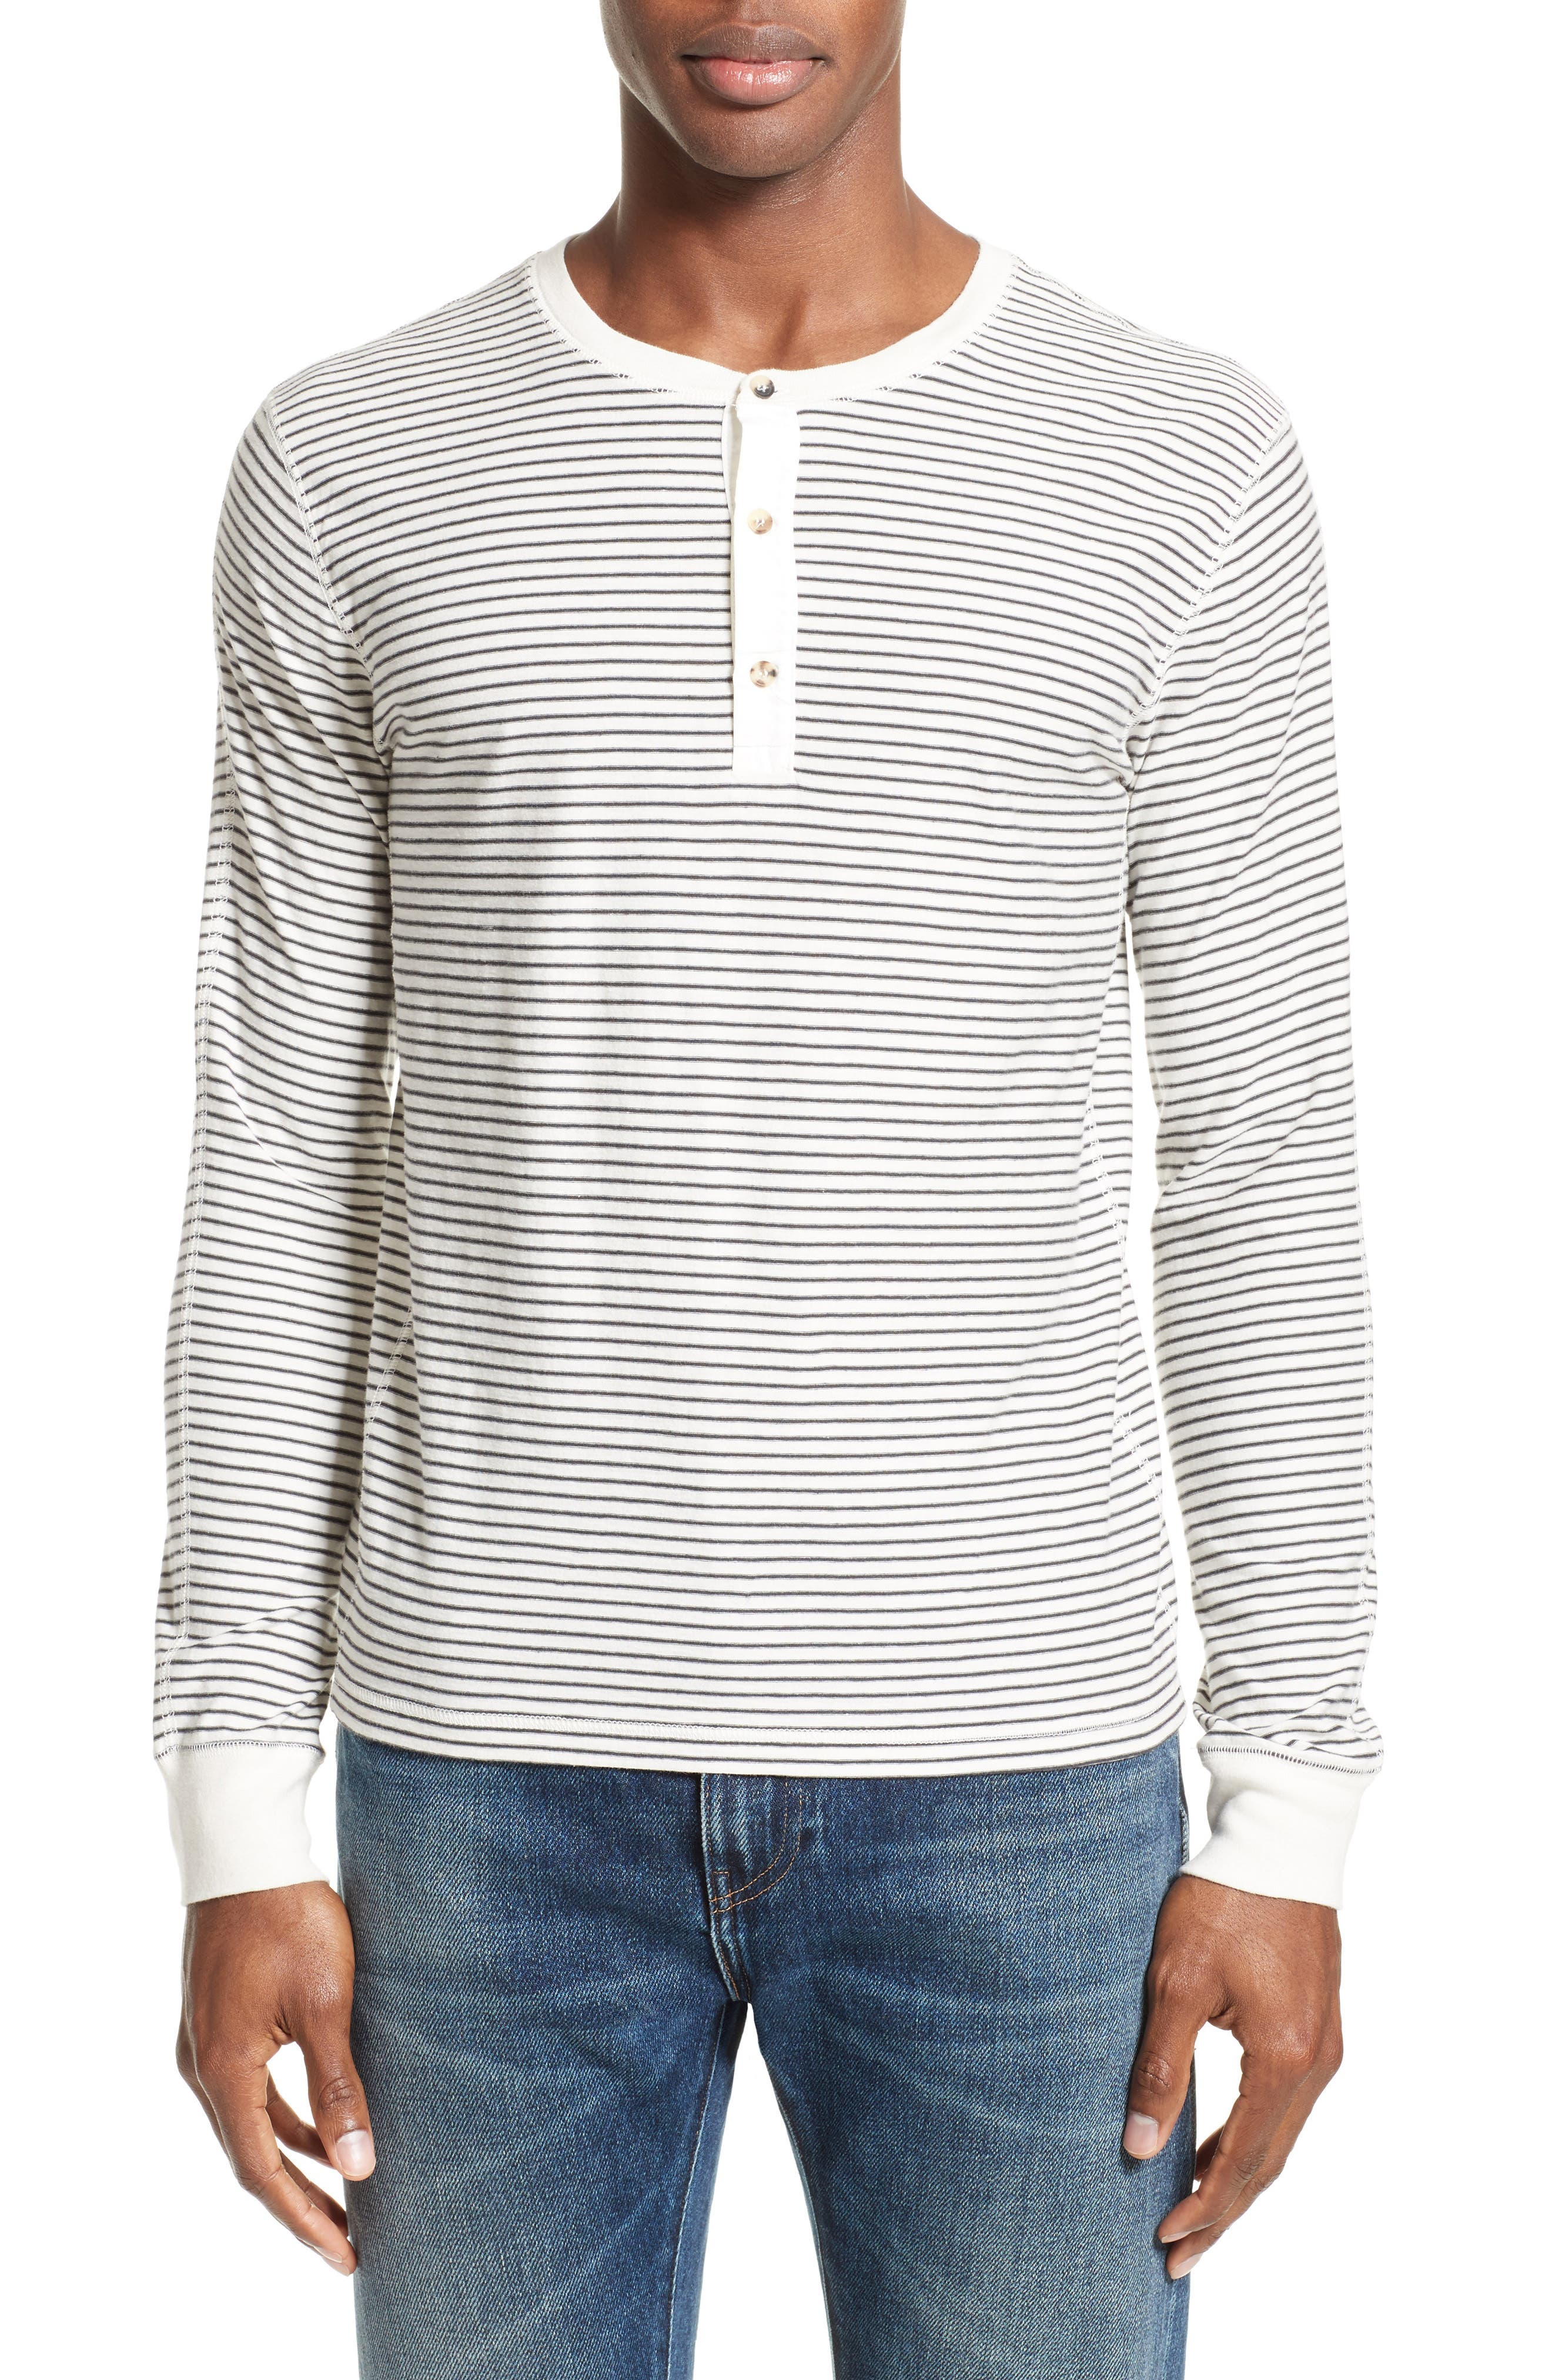 Alternate Image 1 Selected - Levi's® Made & Crafted™ Stripe Henley